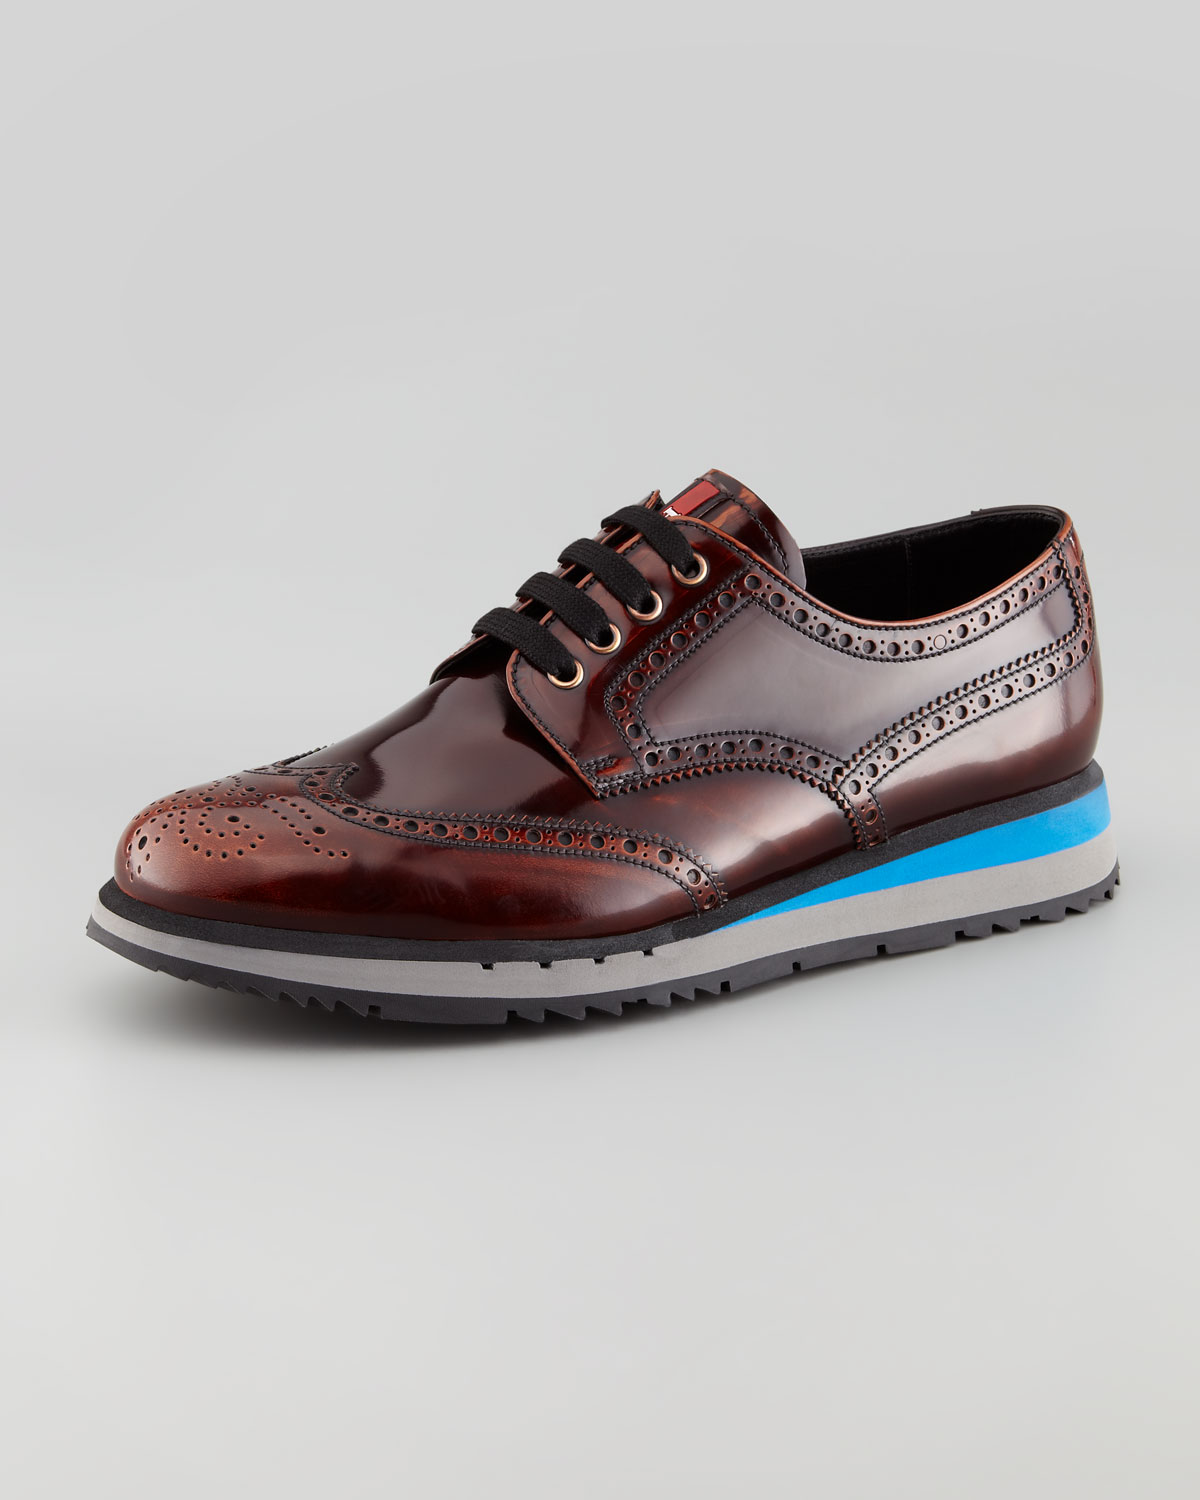 Prada Sport Wingtip Leather Oxfords outlet in China outlet real 1SN42